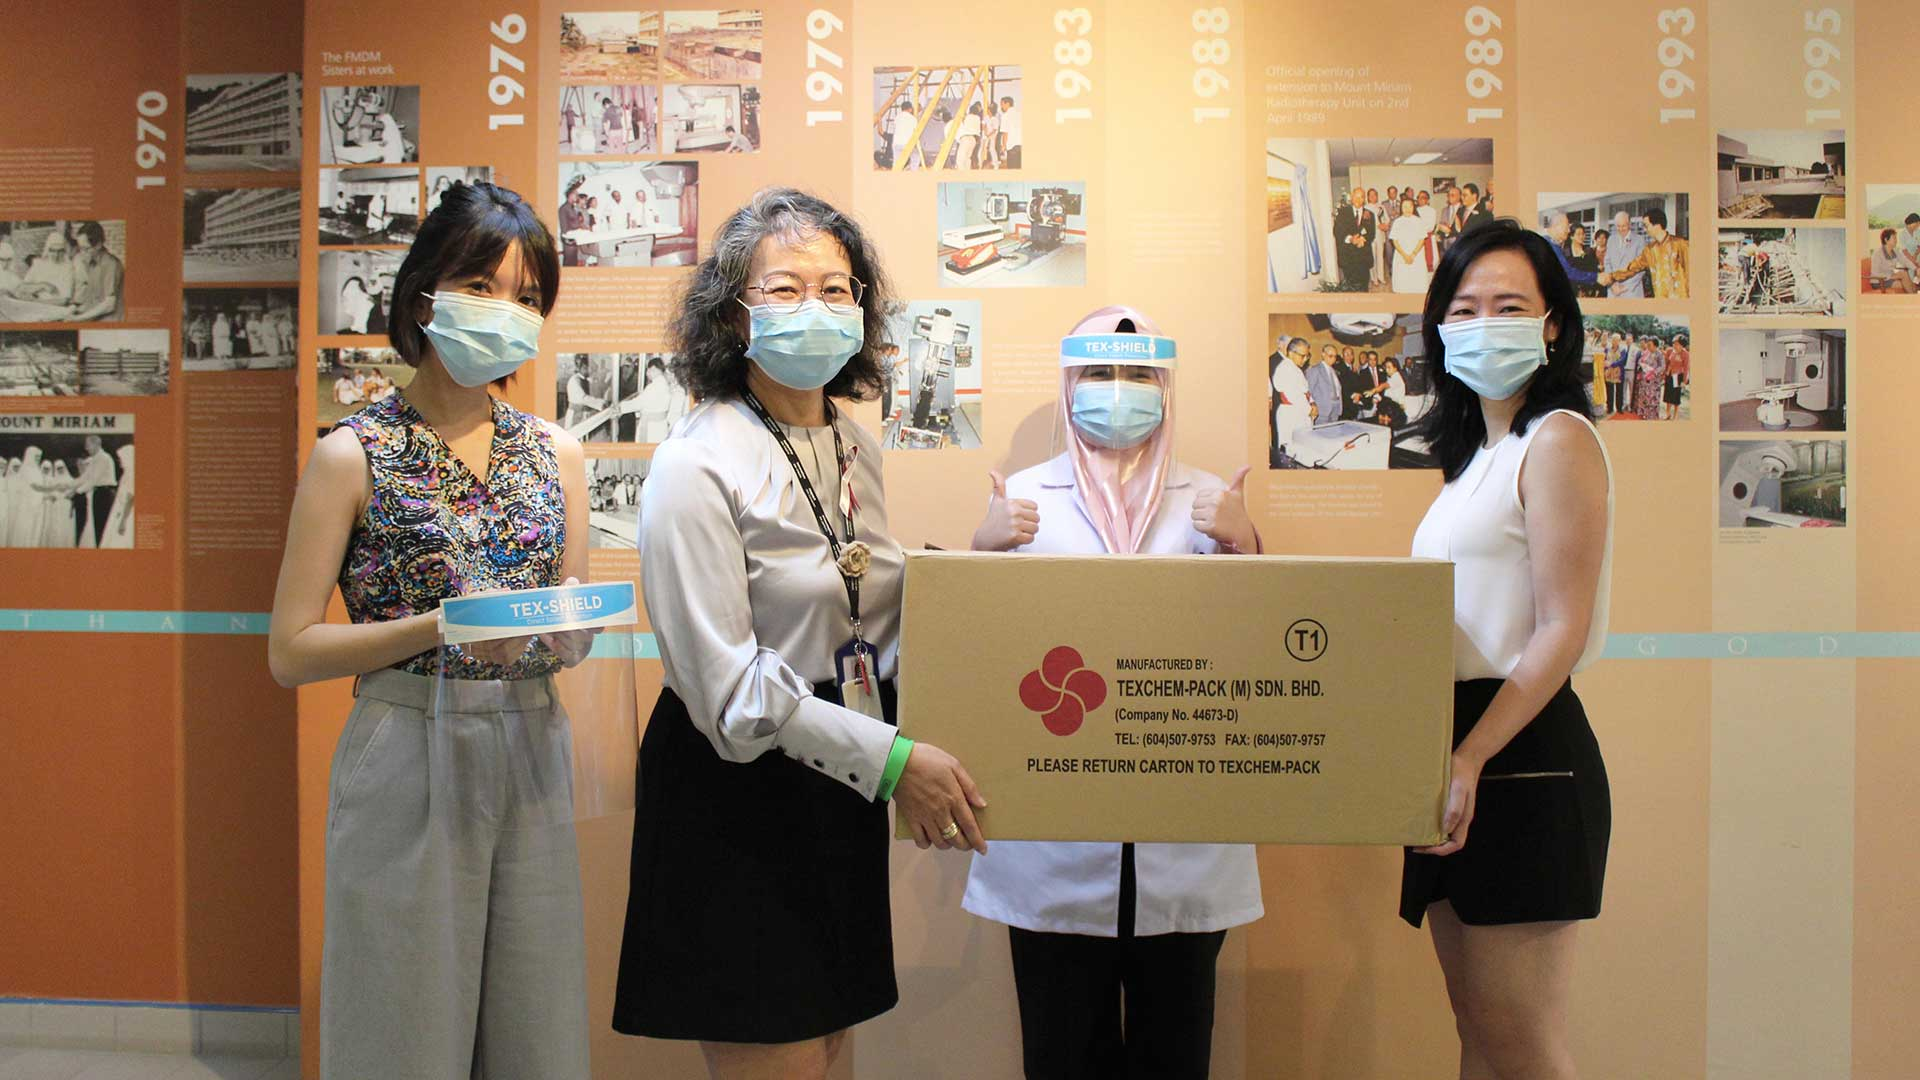 Contribution of Tex-Shield face shield to Mount Miriam Cancer Hospital